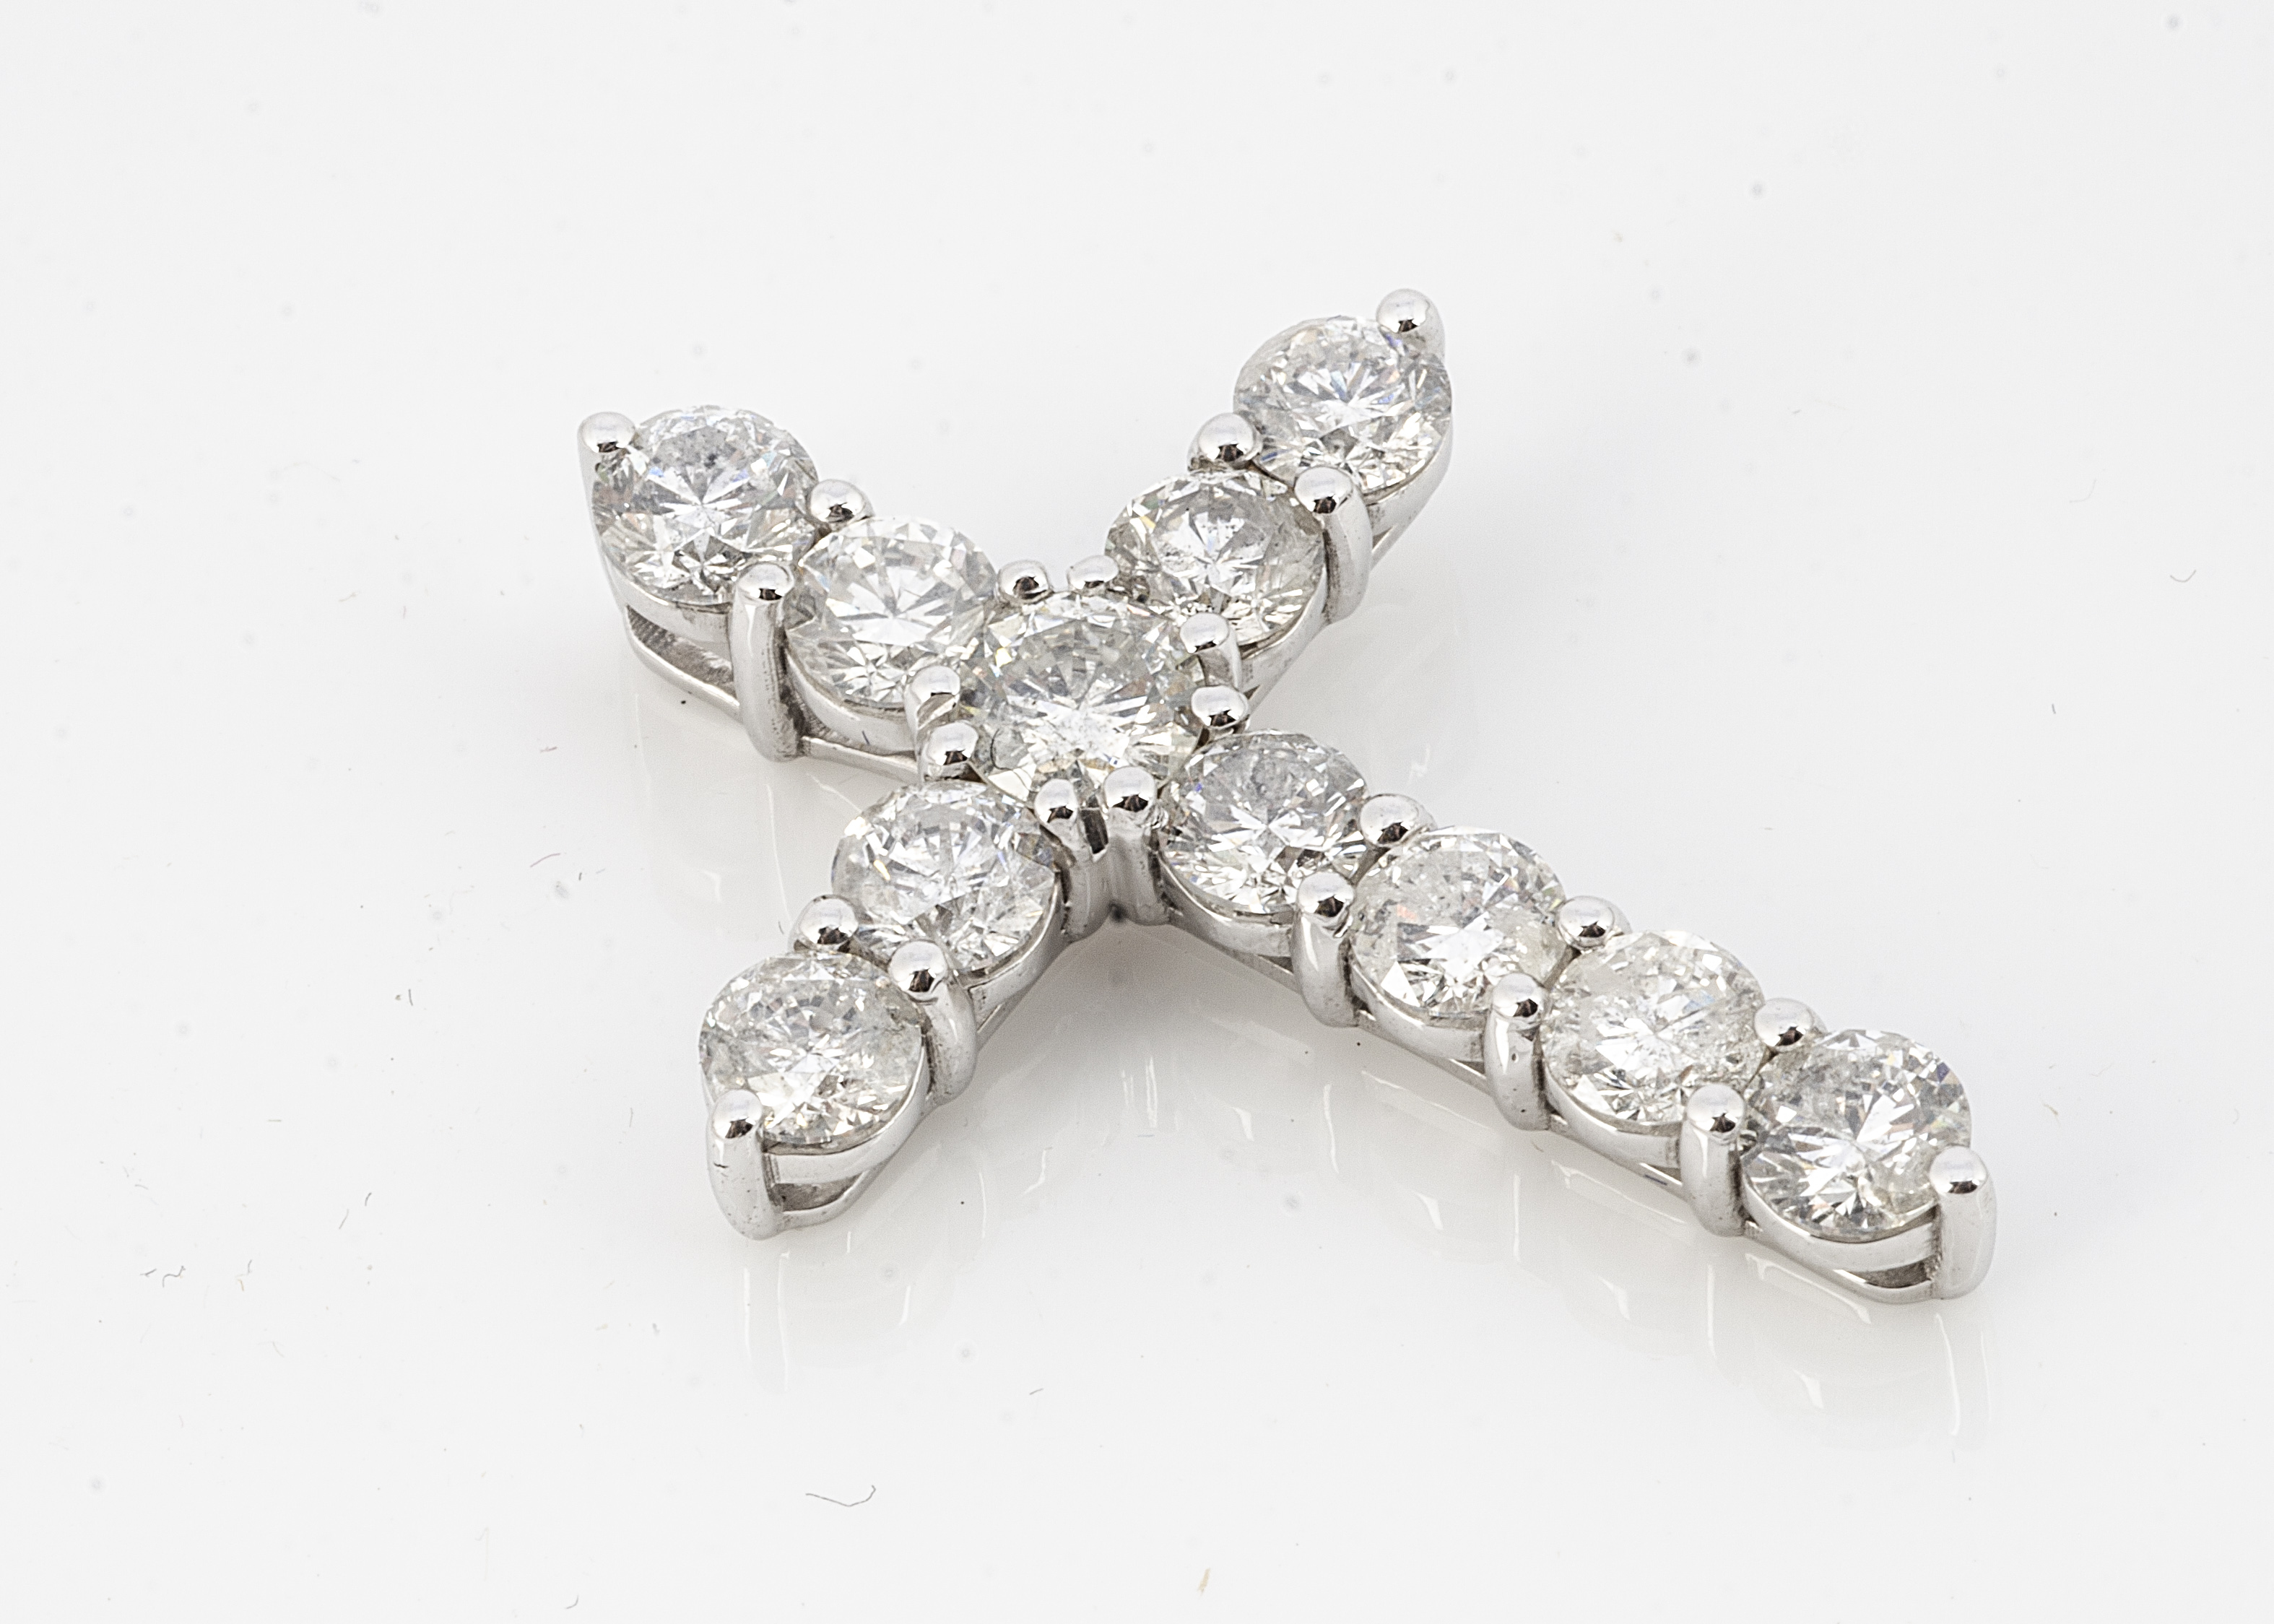 A diamond set cross pendant, the brilliant cuts in claw setting on an 18ct white gold hallmarked